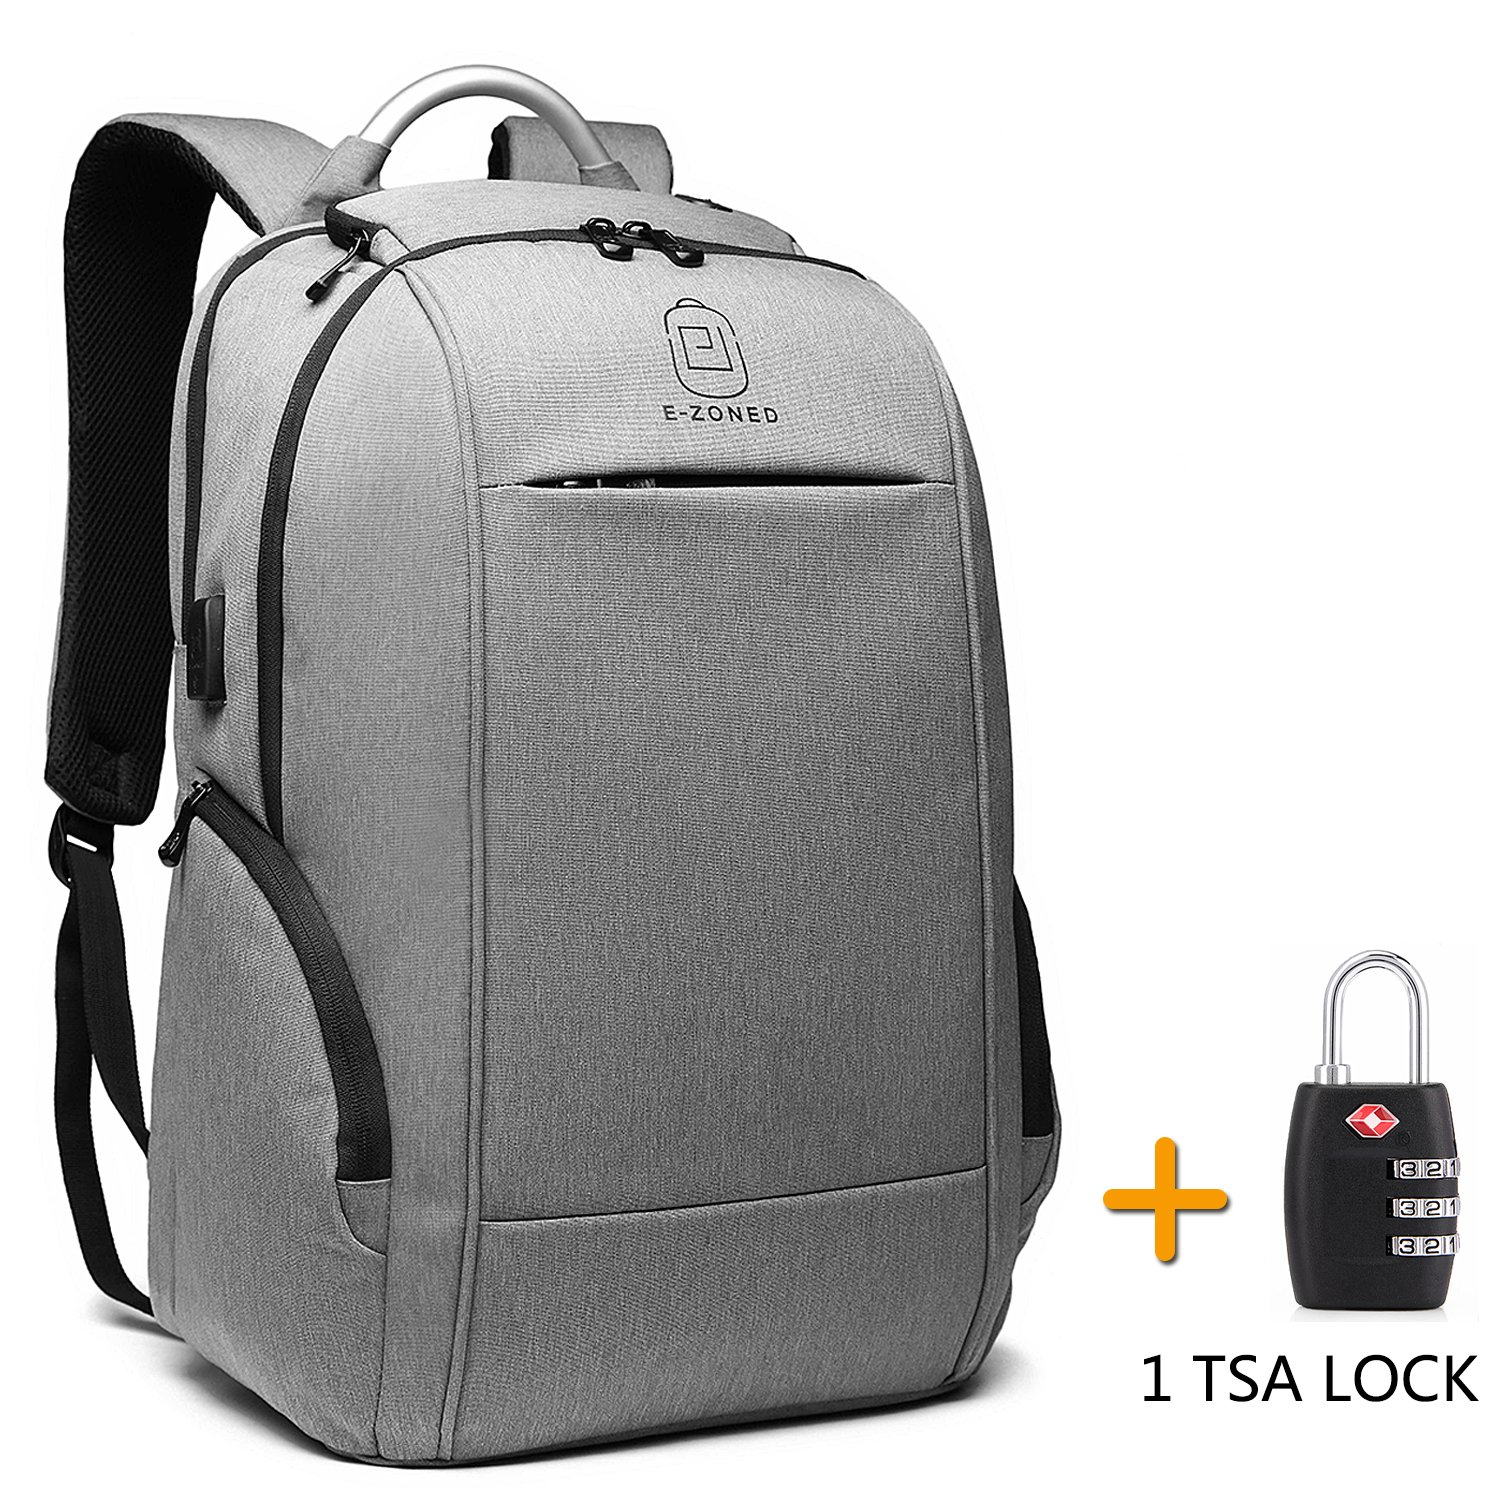 ca220b95b0fc Business Laptop Backpack, 17 Inch Laptop Backpack with TSA Lock ...